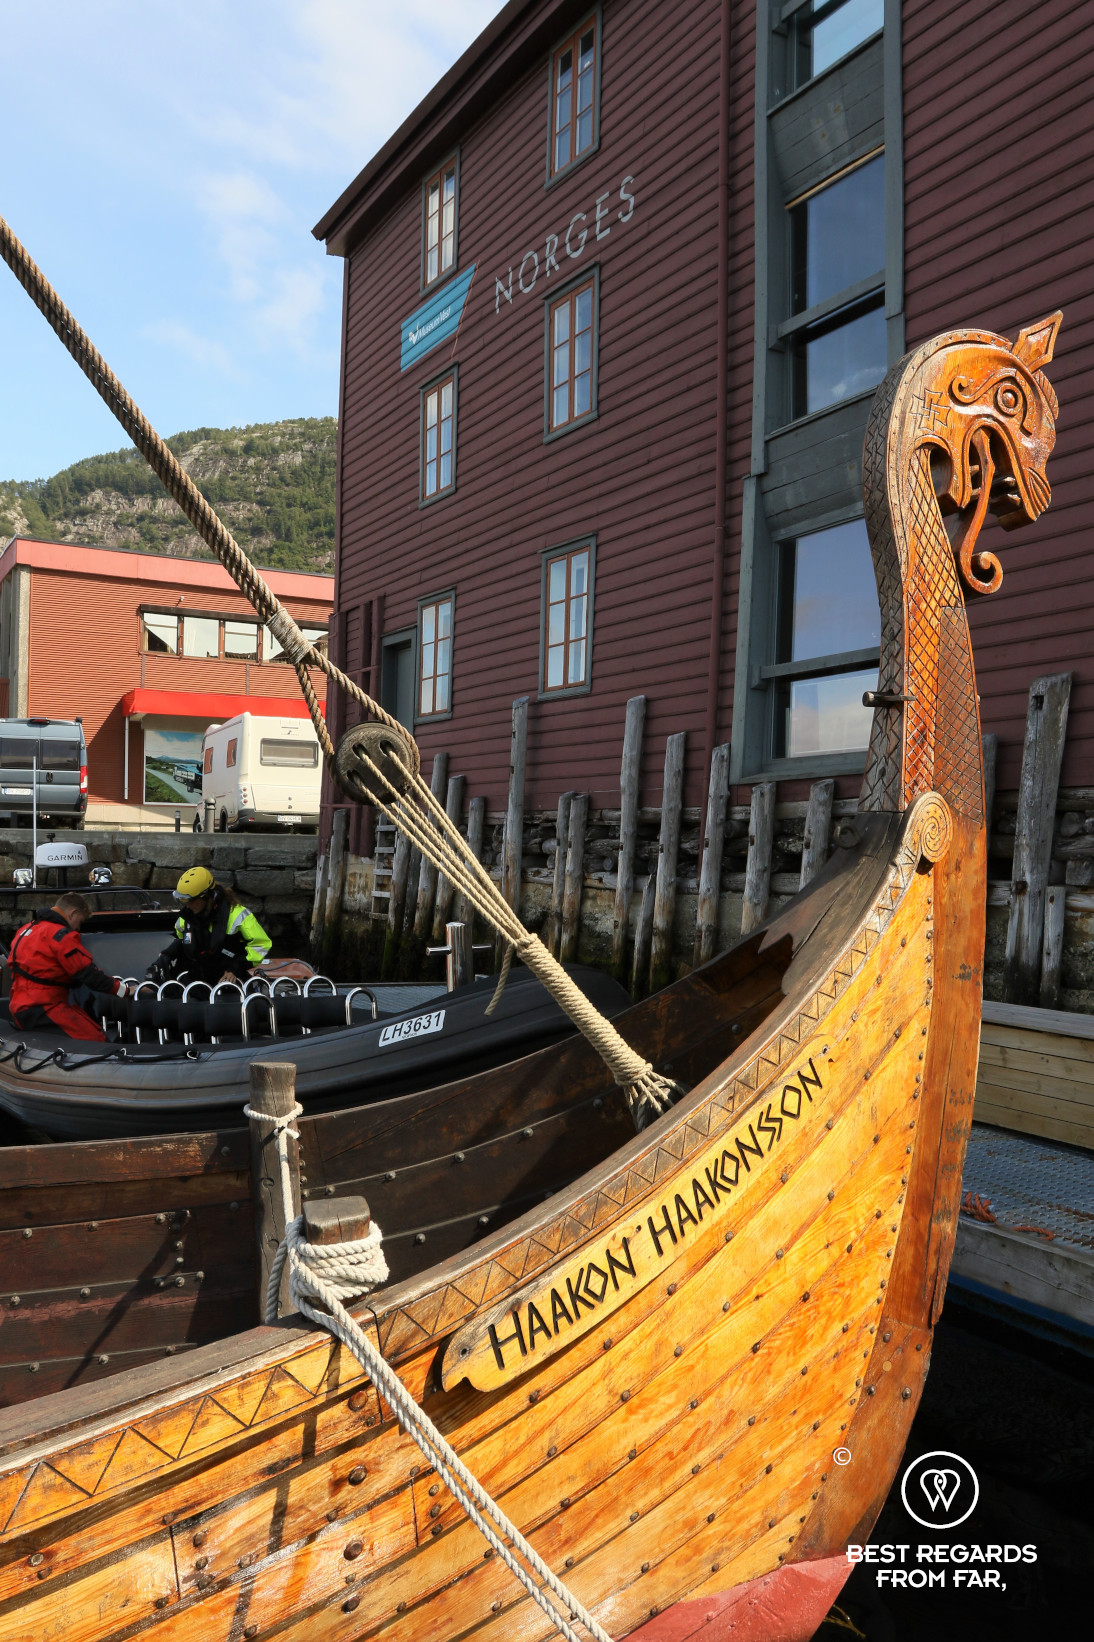 Bergen Fisheries museum with drake and RIB, Bergen, Norway